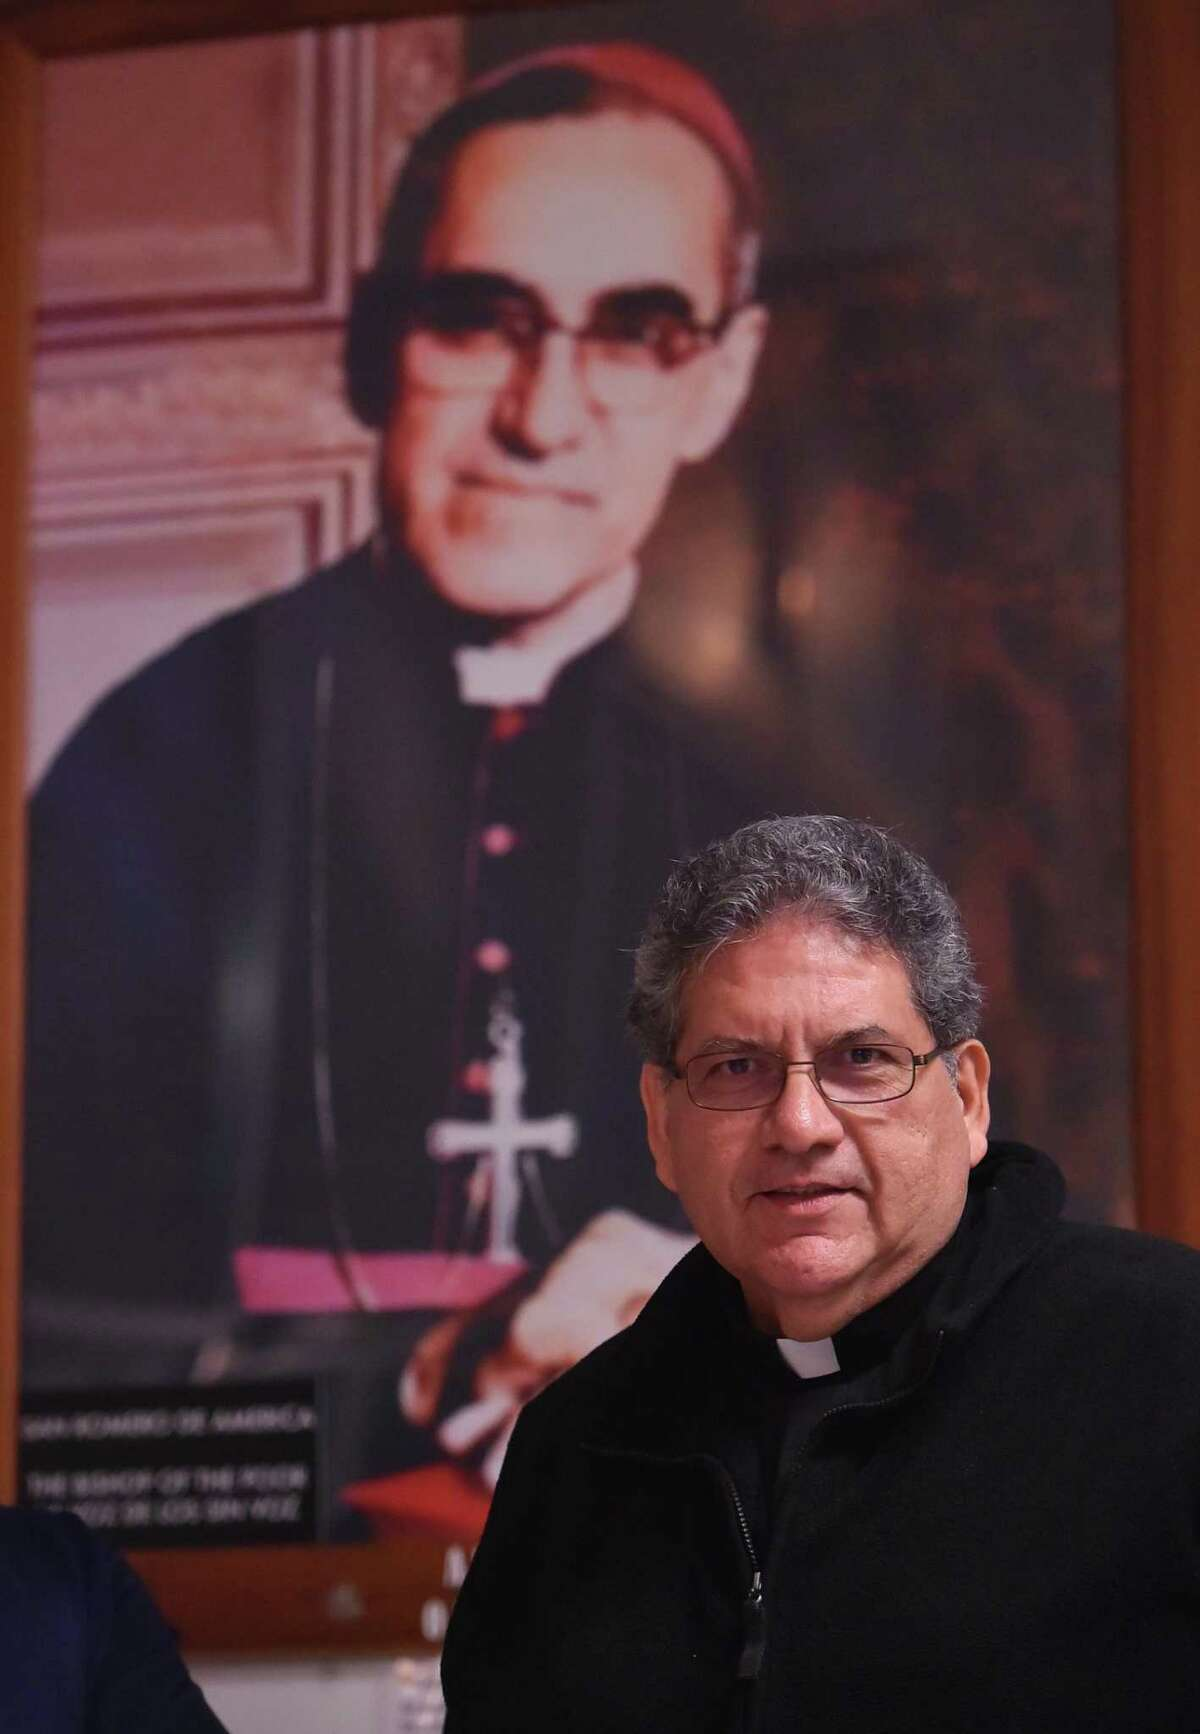 Father Richard Samour, who was baptized in El Salvador by a man who would become a saint, St. Oscar Romero, (in the photograph behind him) a martyr of the Salvadoran civil war.